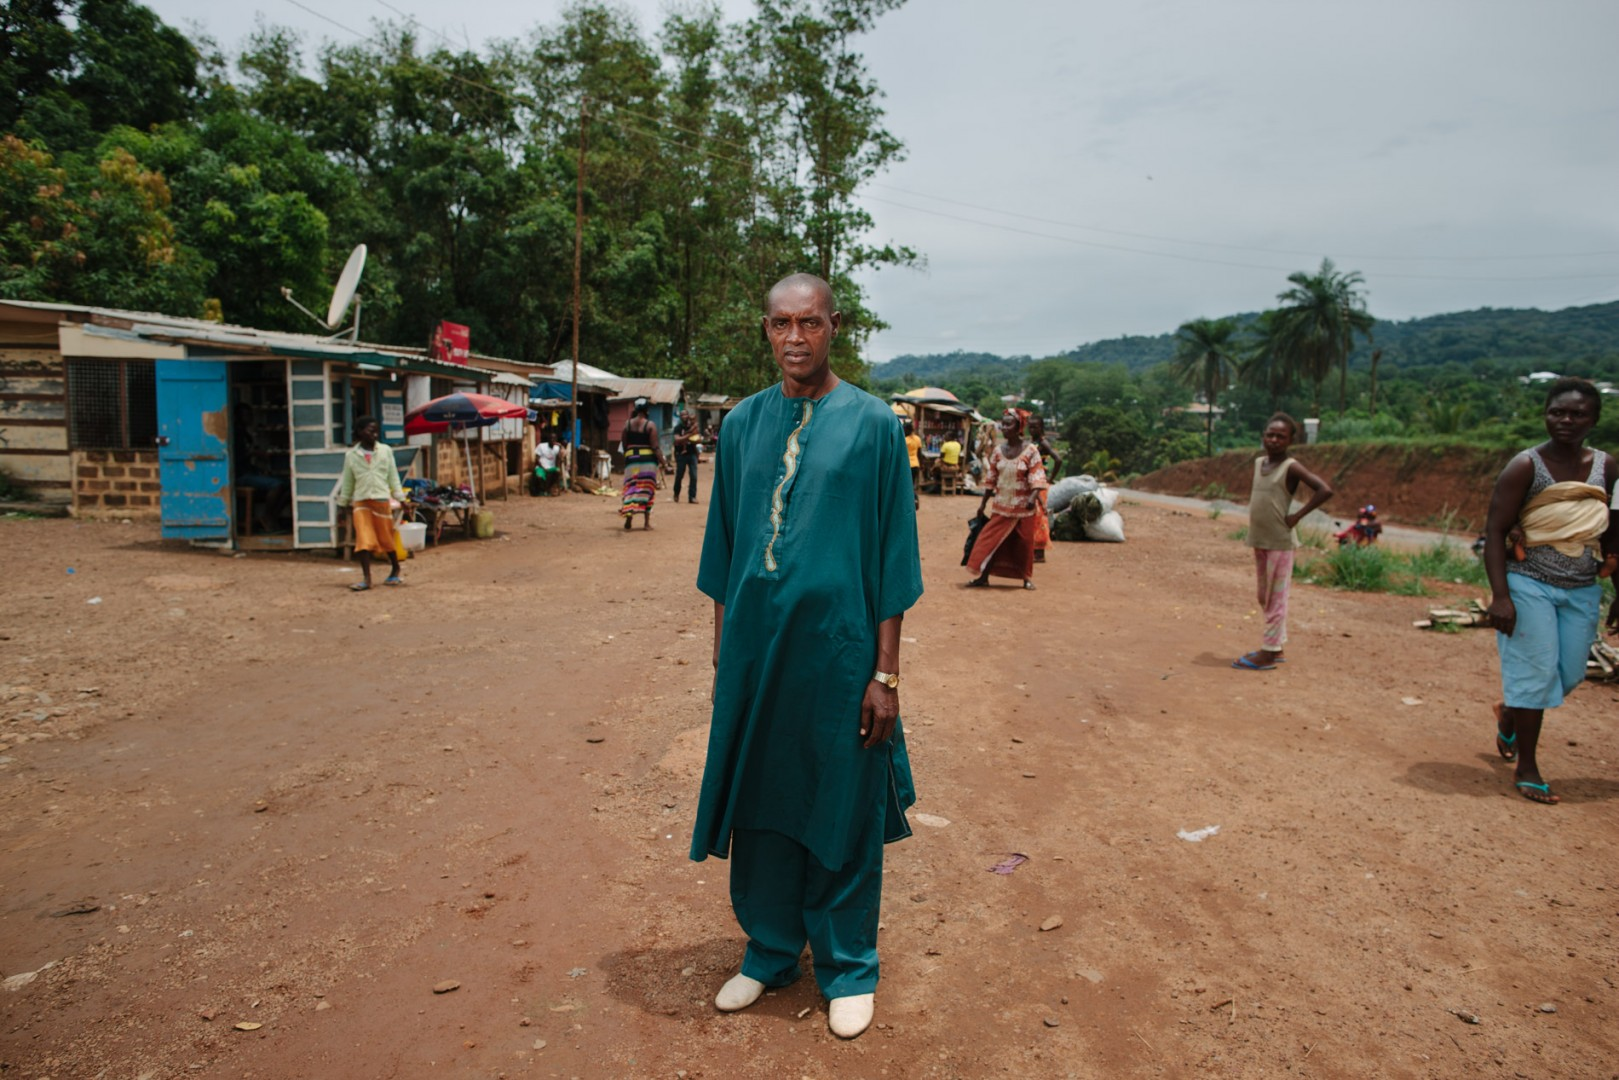 Chief Mohamed Jalloh, Chief of the area where the new Swawou School is being built.